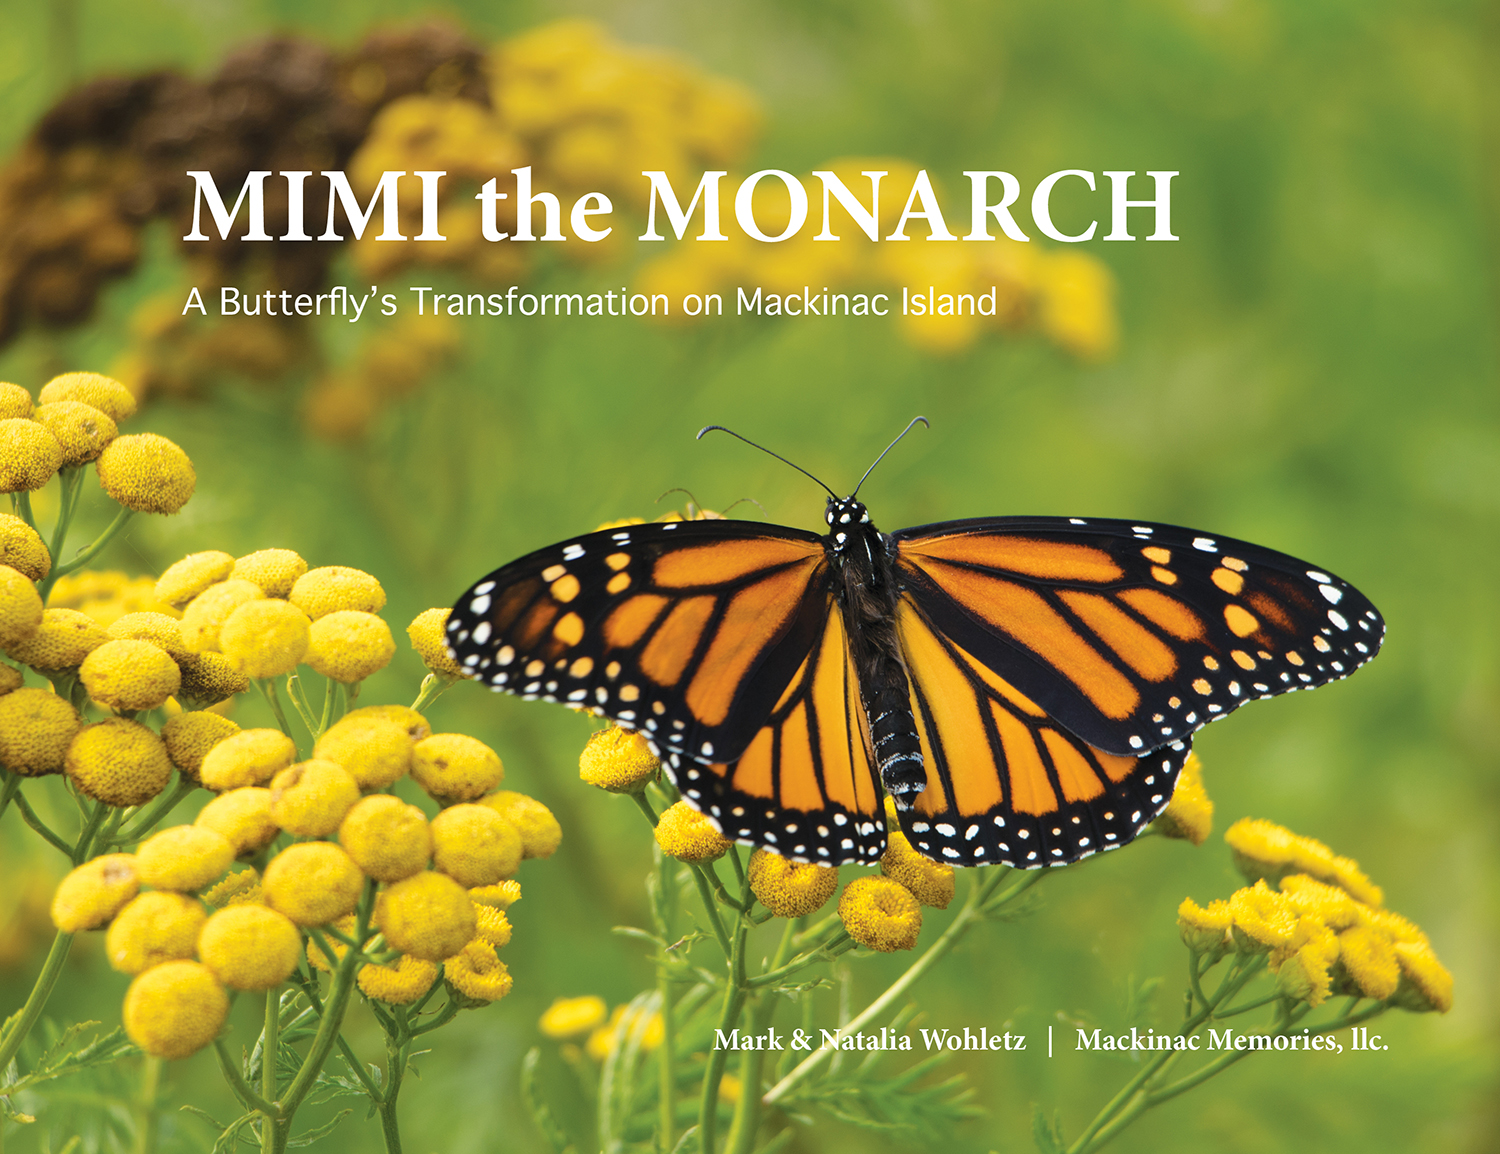 MIMI the MONARCH